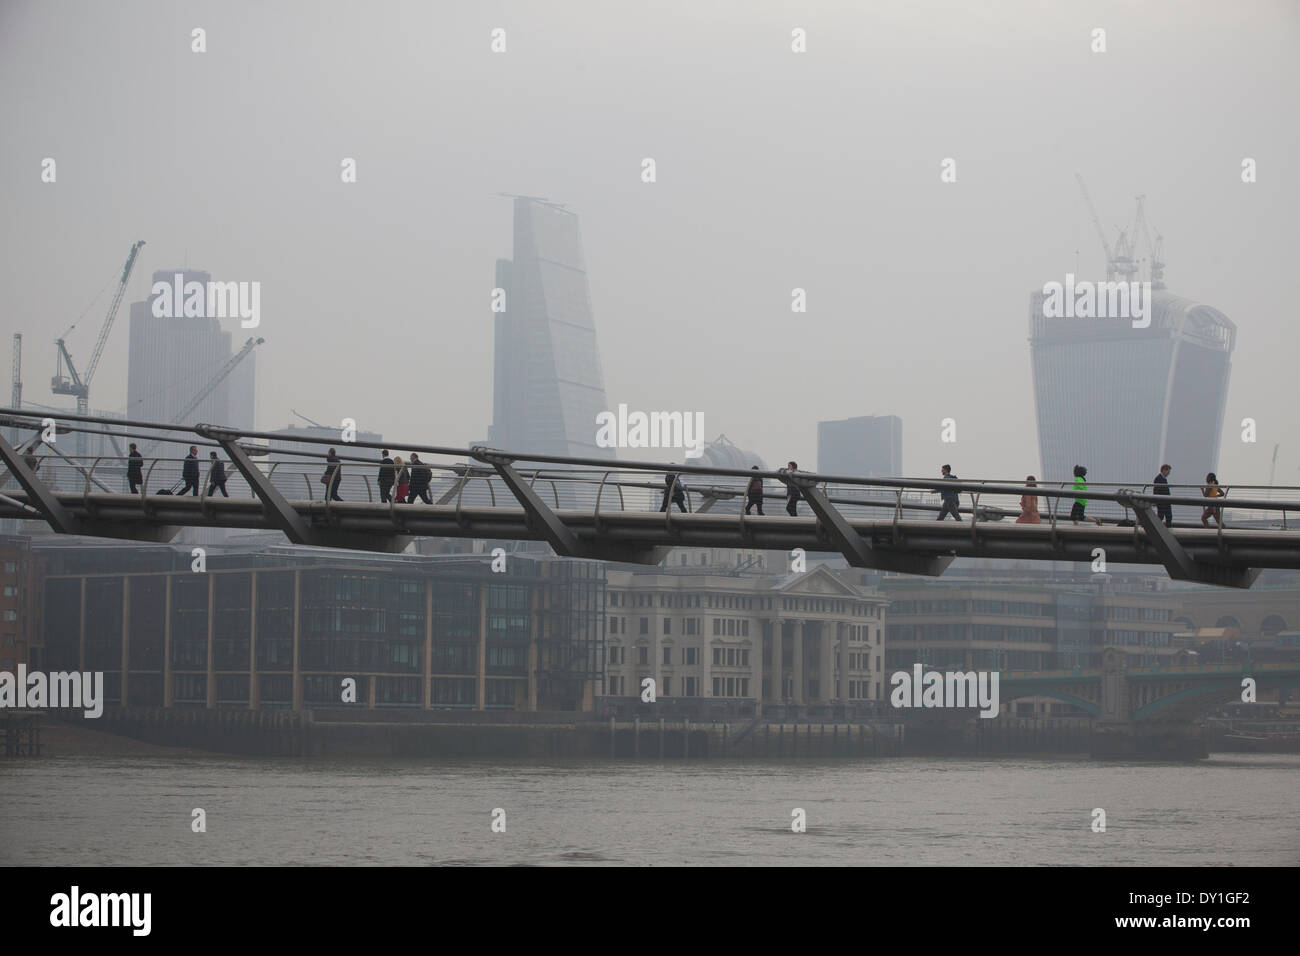 London, UK. 3rd April, 2014. London Smog: Millennium Bridge, City of London, London, UK Commuters make their way across the Millennium Bridge with the finance district in the background shrouded in smog, whilst the London Smog, and red dust swept up from the Sahara continue to cause high levels of air pollution across the capital. Scores of flights have been cancelled and people have been advised to stay indoors if they suffer from asthma or heart conditions. Credit:  Jeff Gilbert/Alamy Live News - Stock Image